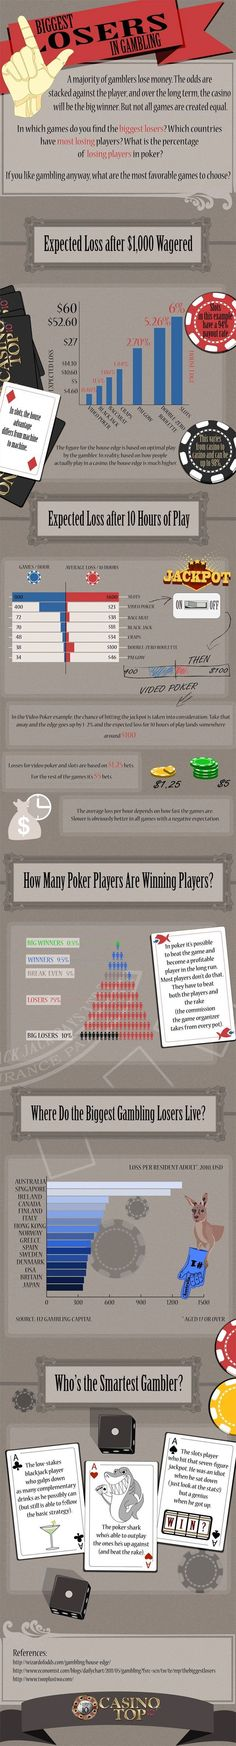 The Biggest Losers in Gambling (Infographic)